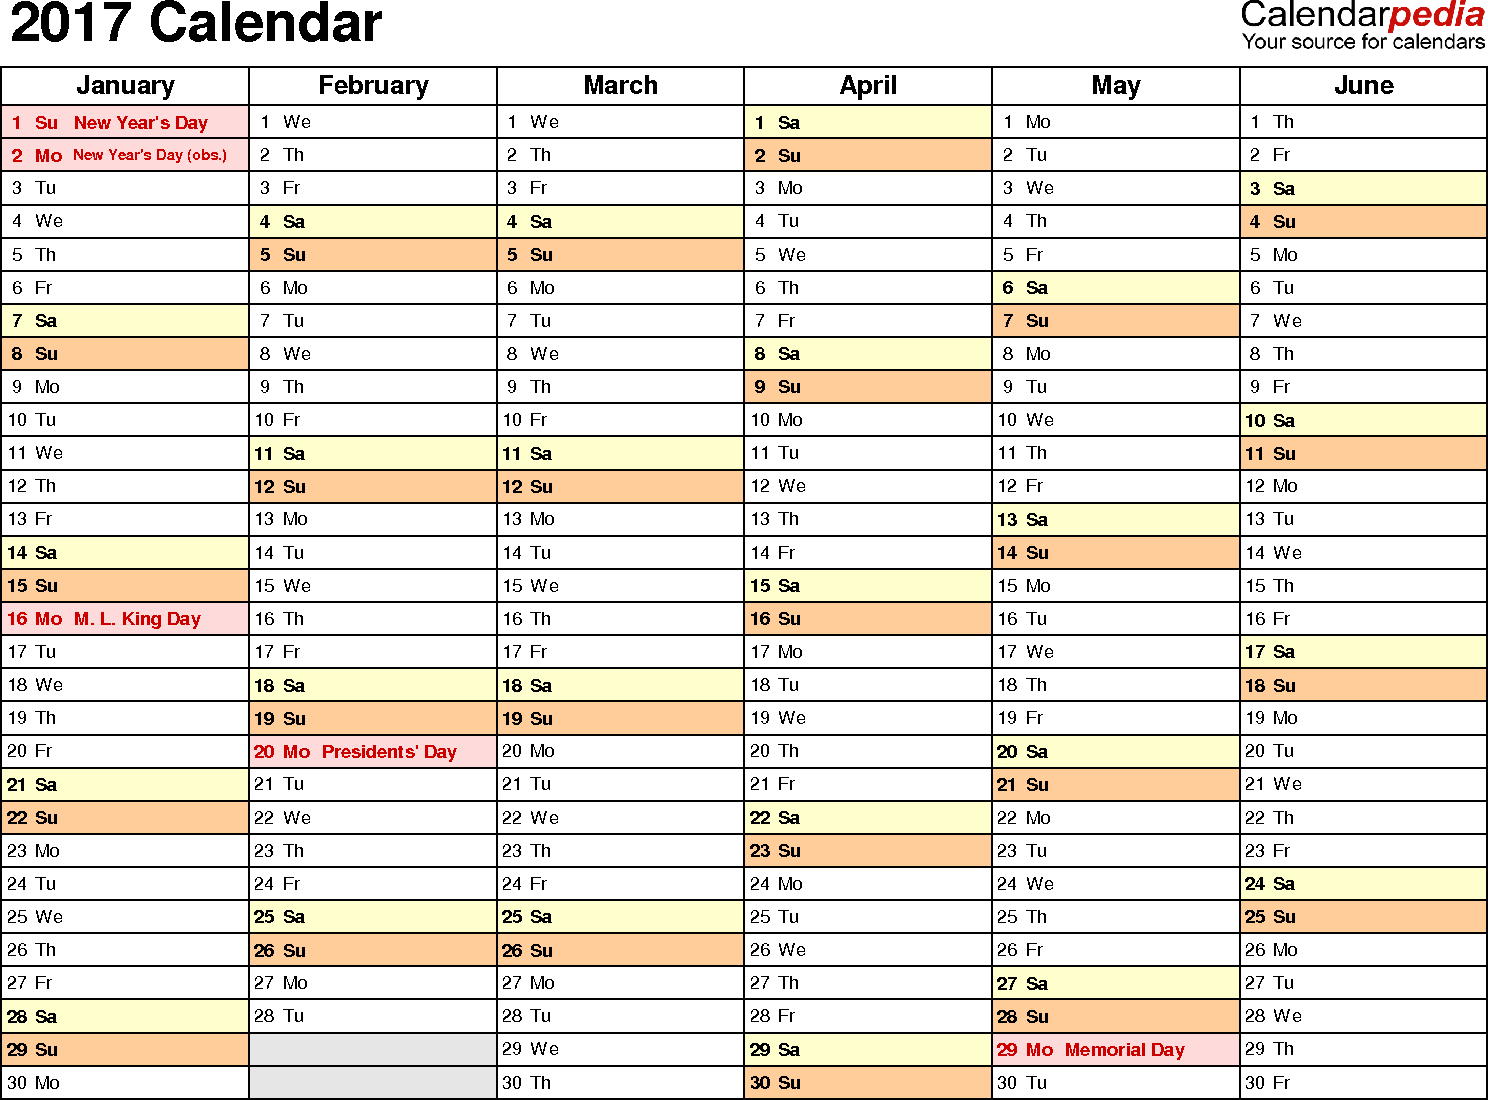 Ediblewildsus  Outstanding  Calendar  Download  Free Printable Excel Templates Xls With Fetching Template   Calendar For Excel Months Horizontally  Pages Landscape Orientation With Astounding Using Irr In Excel Also Compare Lists Excel In Addition Sensor Excel Cartridges And Histogram Graph Excel As Well As Find Link In Excel Additionally Excel Create Drop Down Menu From Calendarpediacom With Ediblewildsus  Fetching  Calendar  Download  Free Printable Excel Templates Xls With Astounding Template   Calendar For Excel Months Horizontally  Pages Landscape Orientation And Outstanding Using Irr In Excel Also Compare Lists Excel In Addition Sensor Excel Cartridges From Calendarpediacom